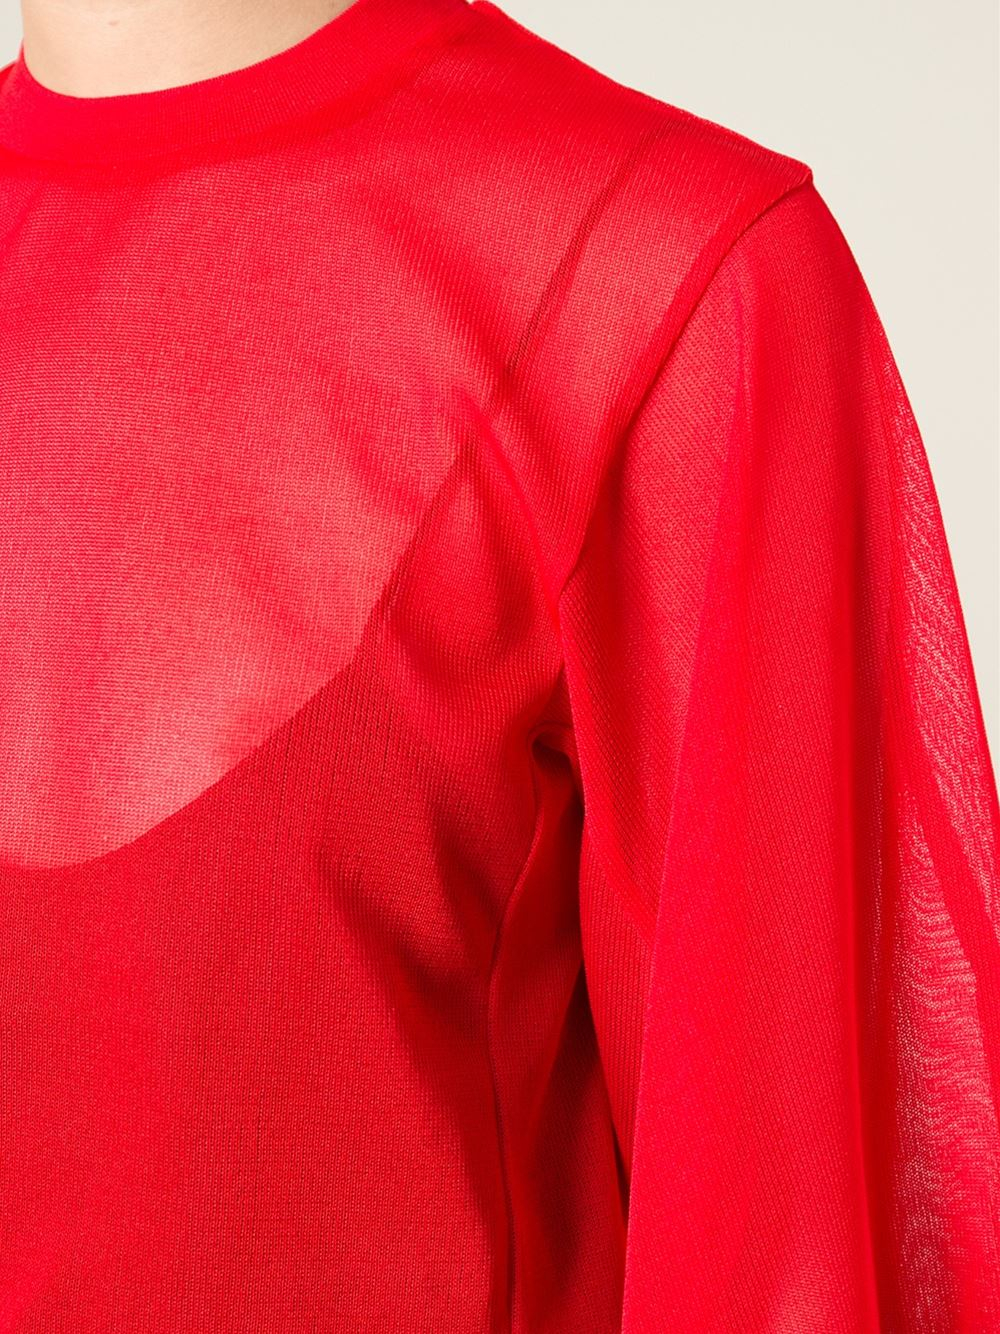 Toga pulla Sheer Sweater in Red | Lyst